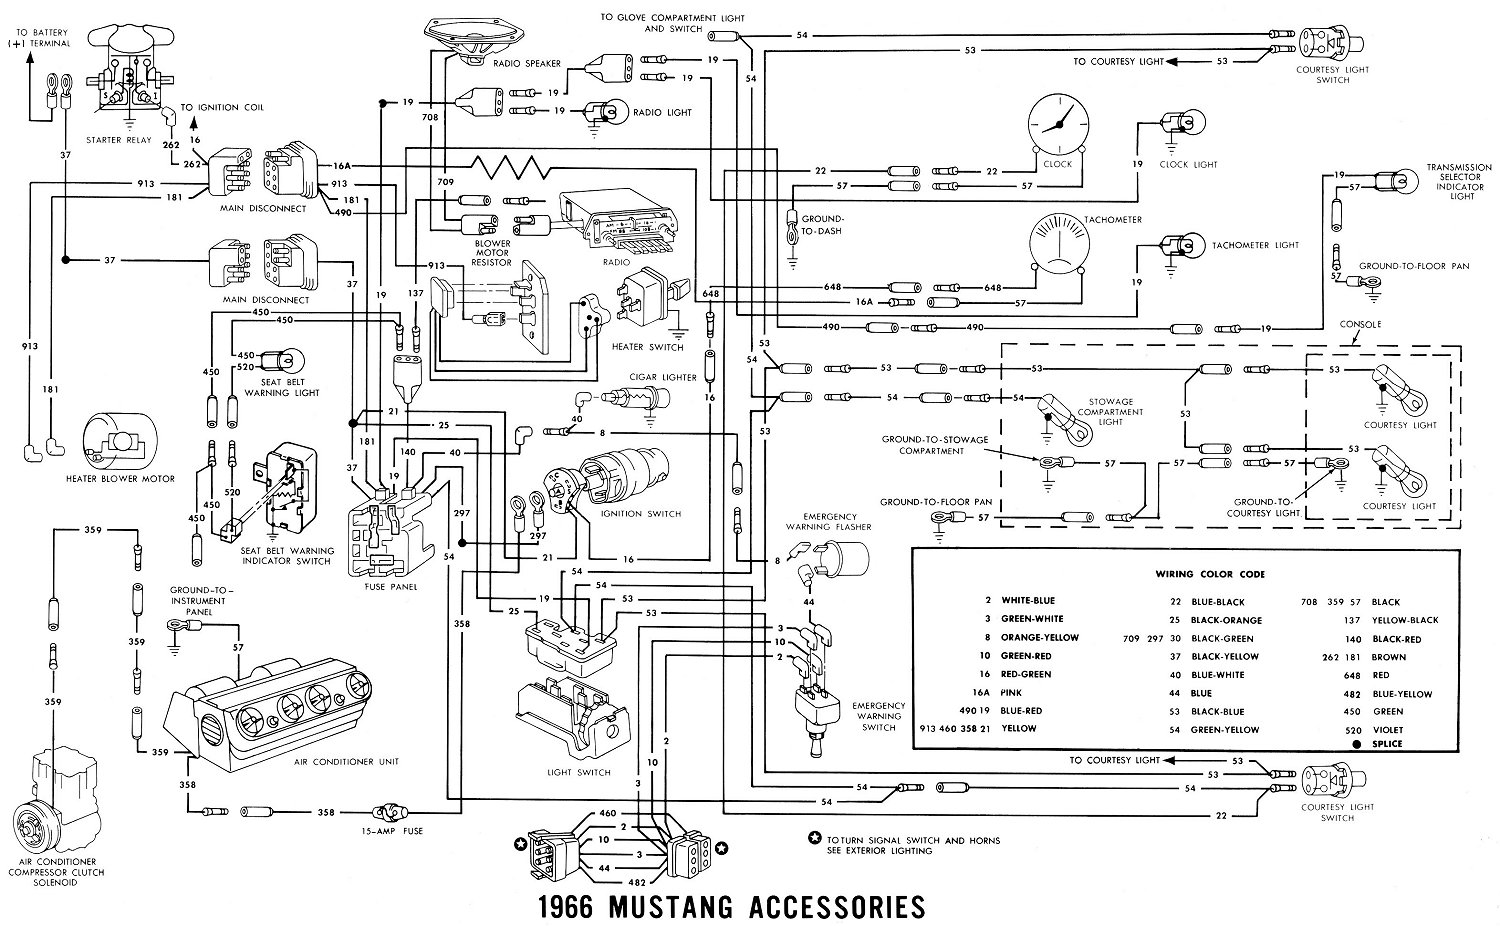 66acces1 1966 mustang wiring diagrams average joe restoration 1966 mustang wiring diagrams at nearapp.co